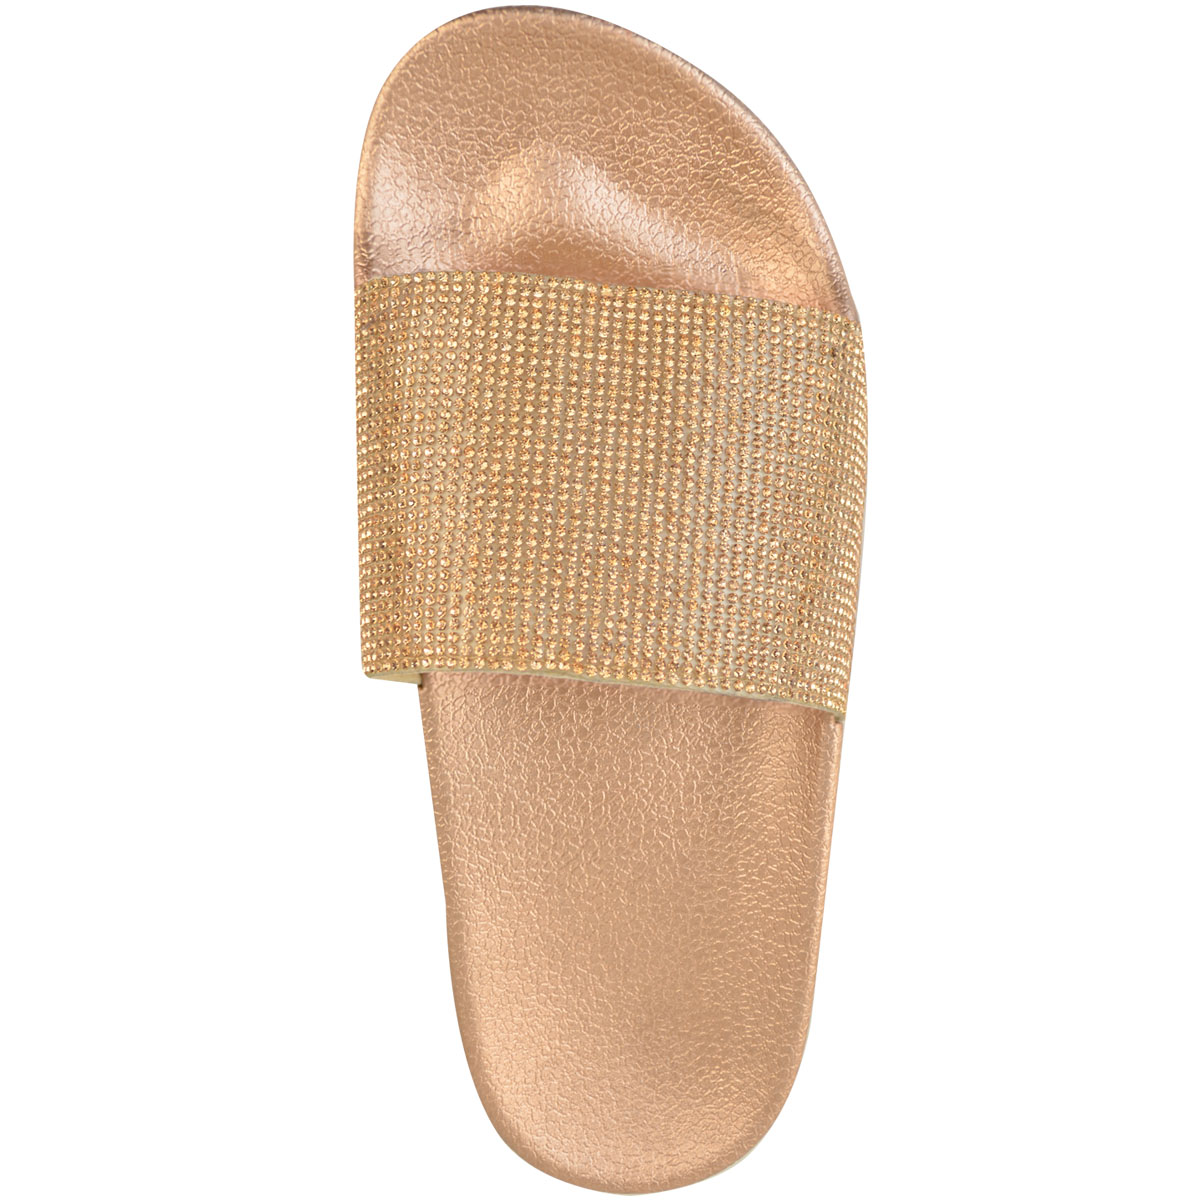 Womens-Ladies-Flat-Slides-Sandals-Diamante-Sparkly-Sliders-Slippers-Shoes-Size thumbnail 16